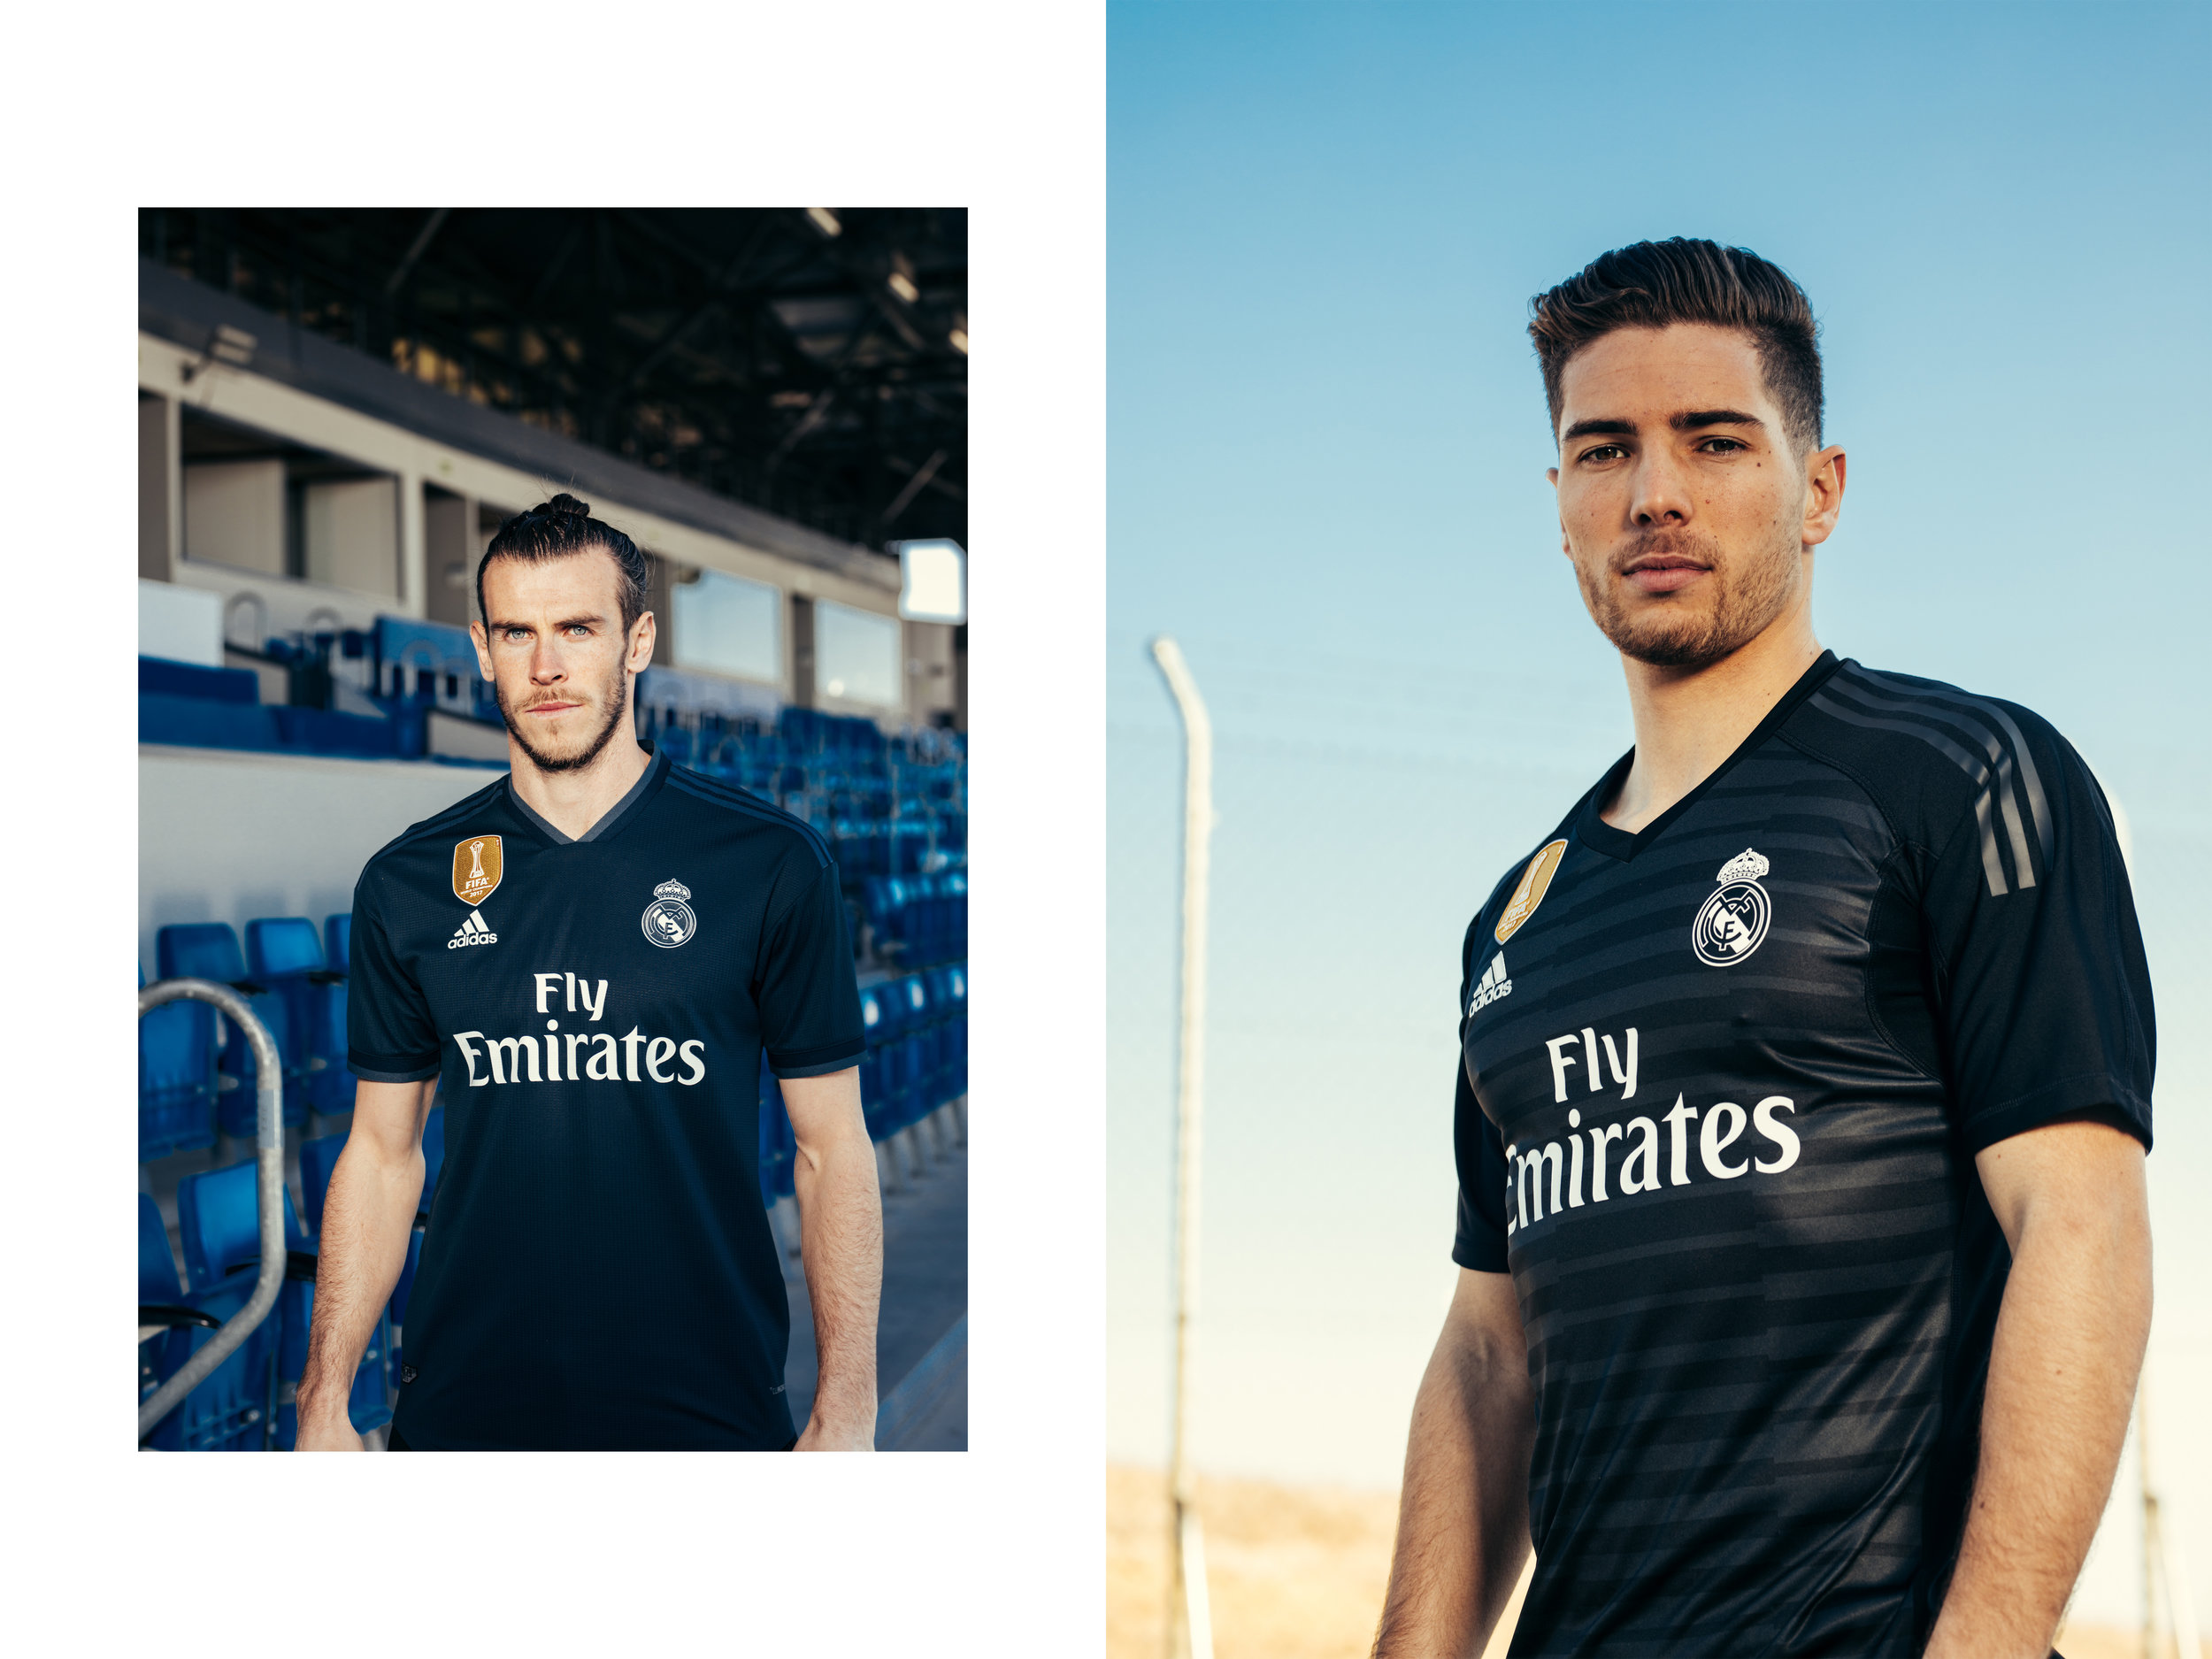 Real Madrid for World Soccer Shop